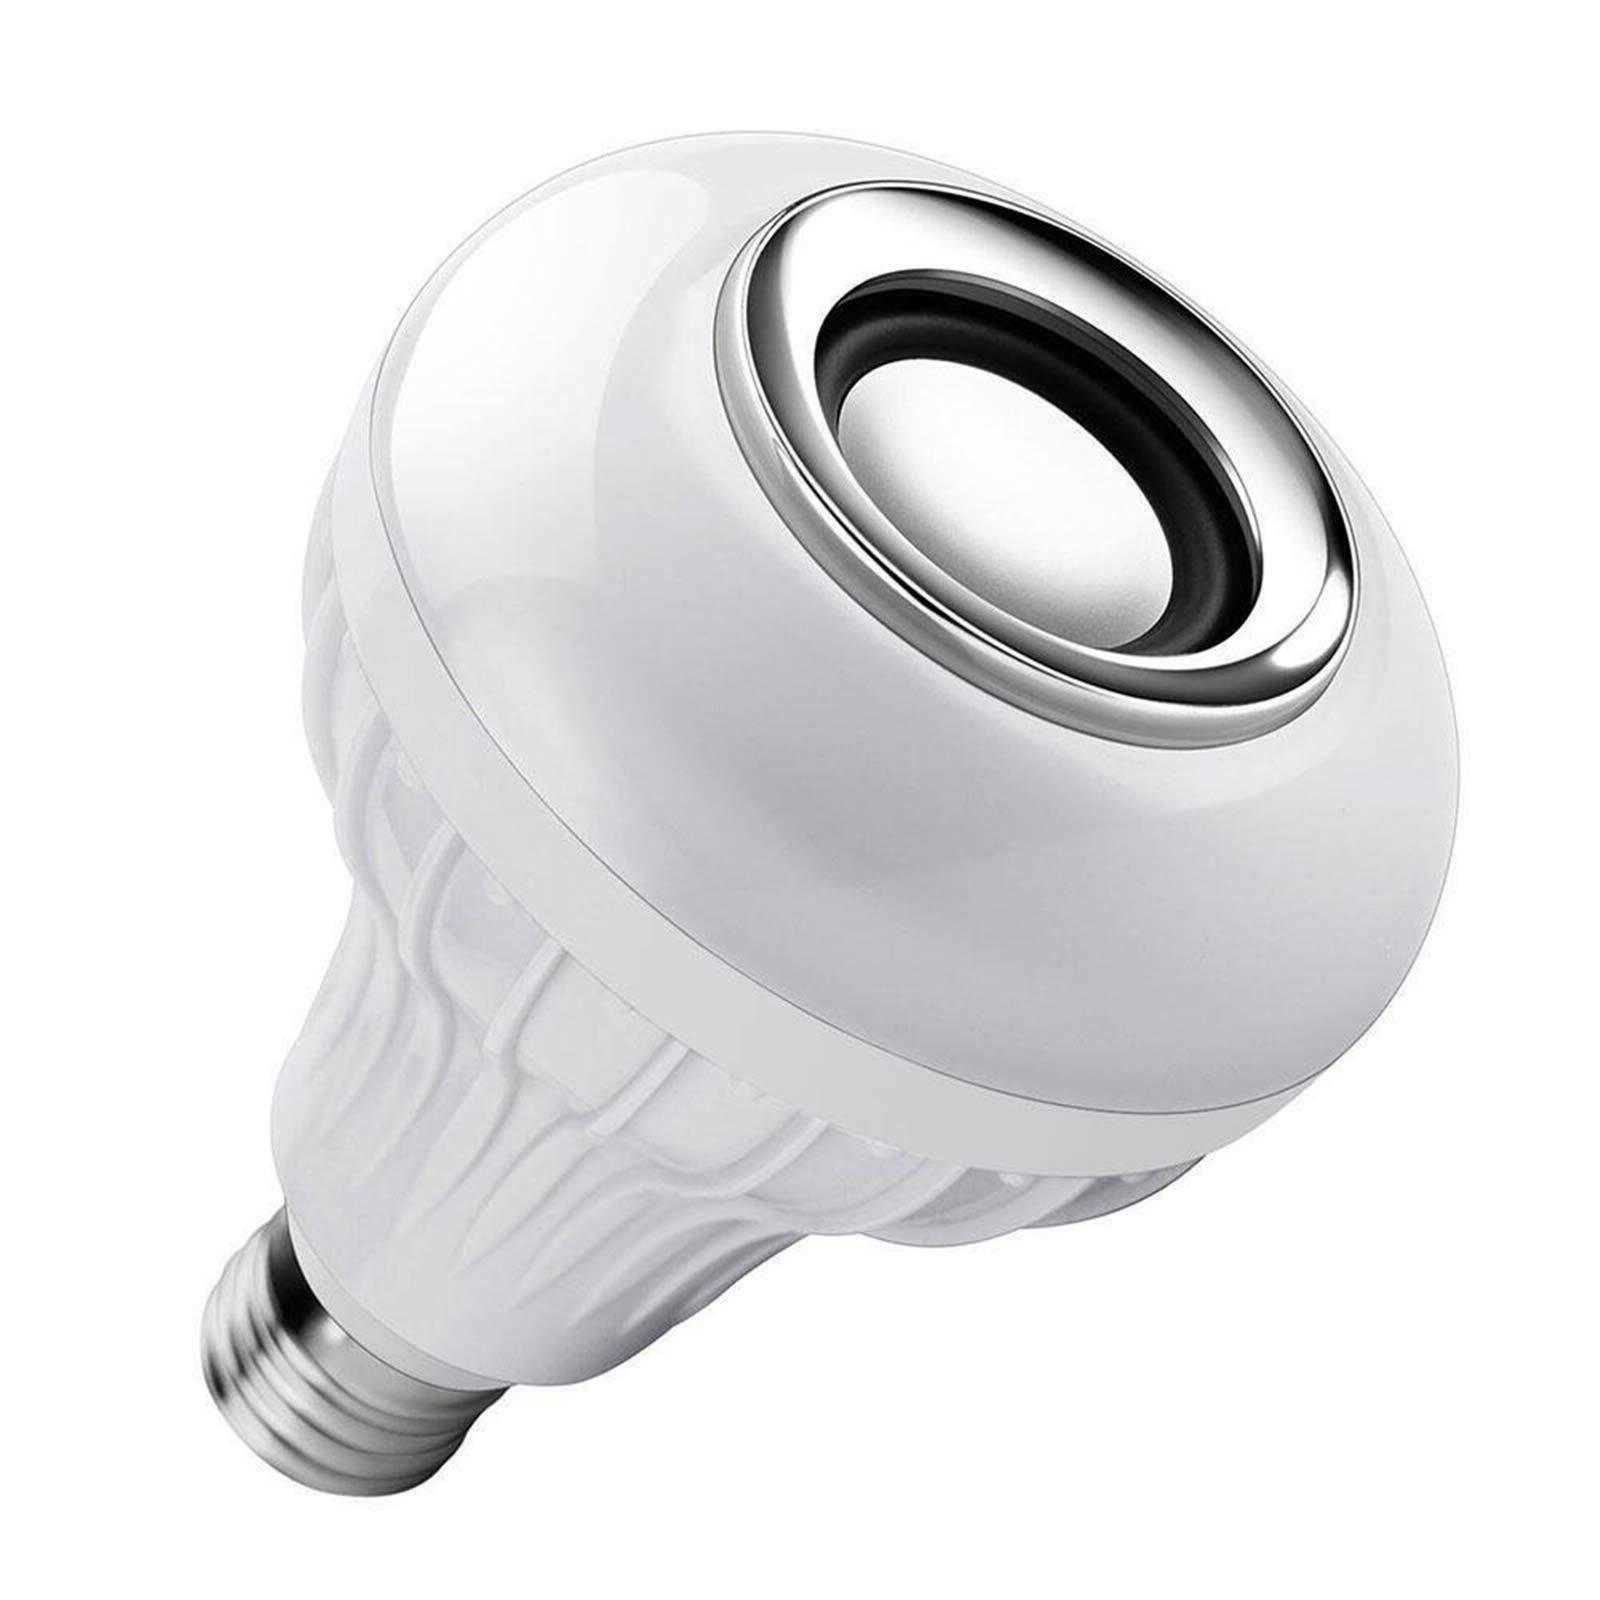 LED Wireless Light Bulb 12W Music Lamp with Remote